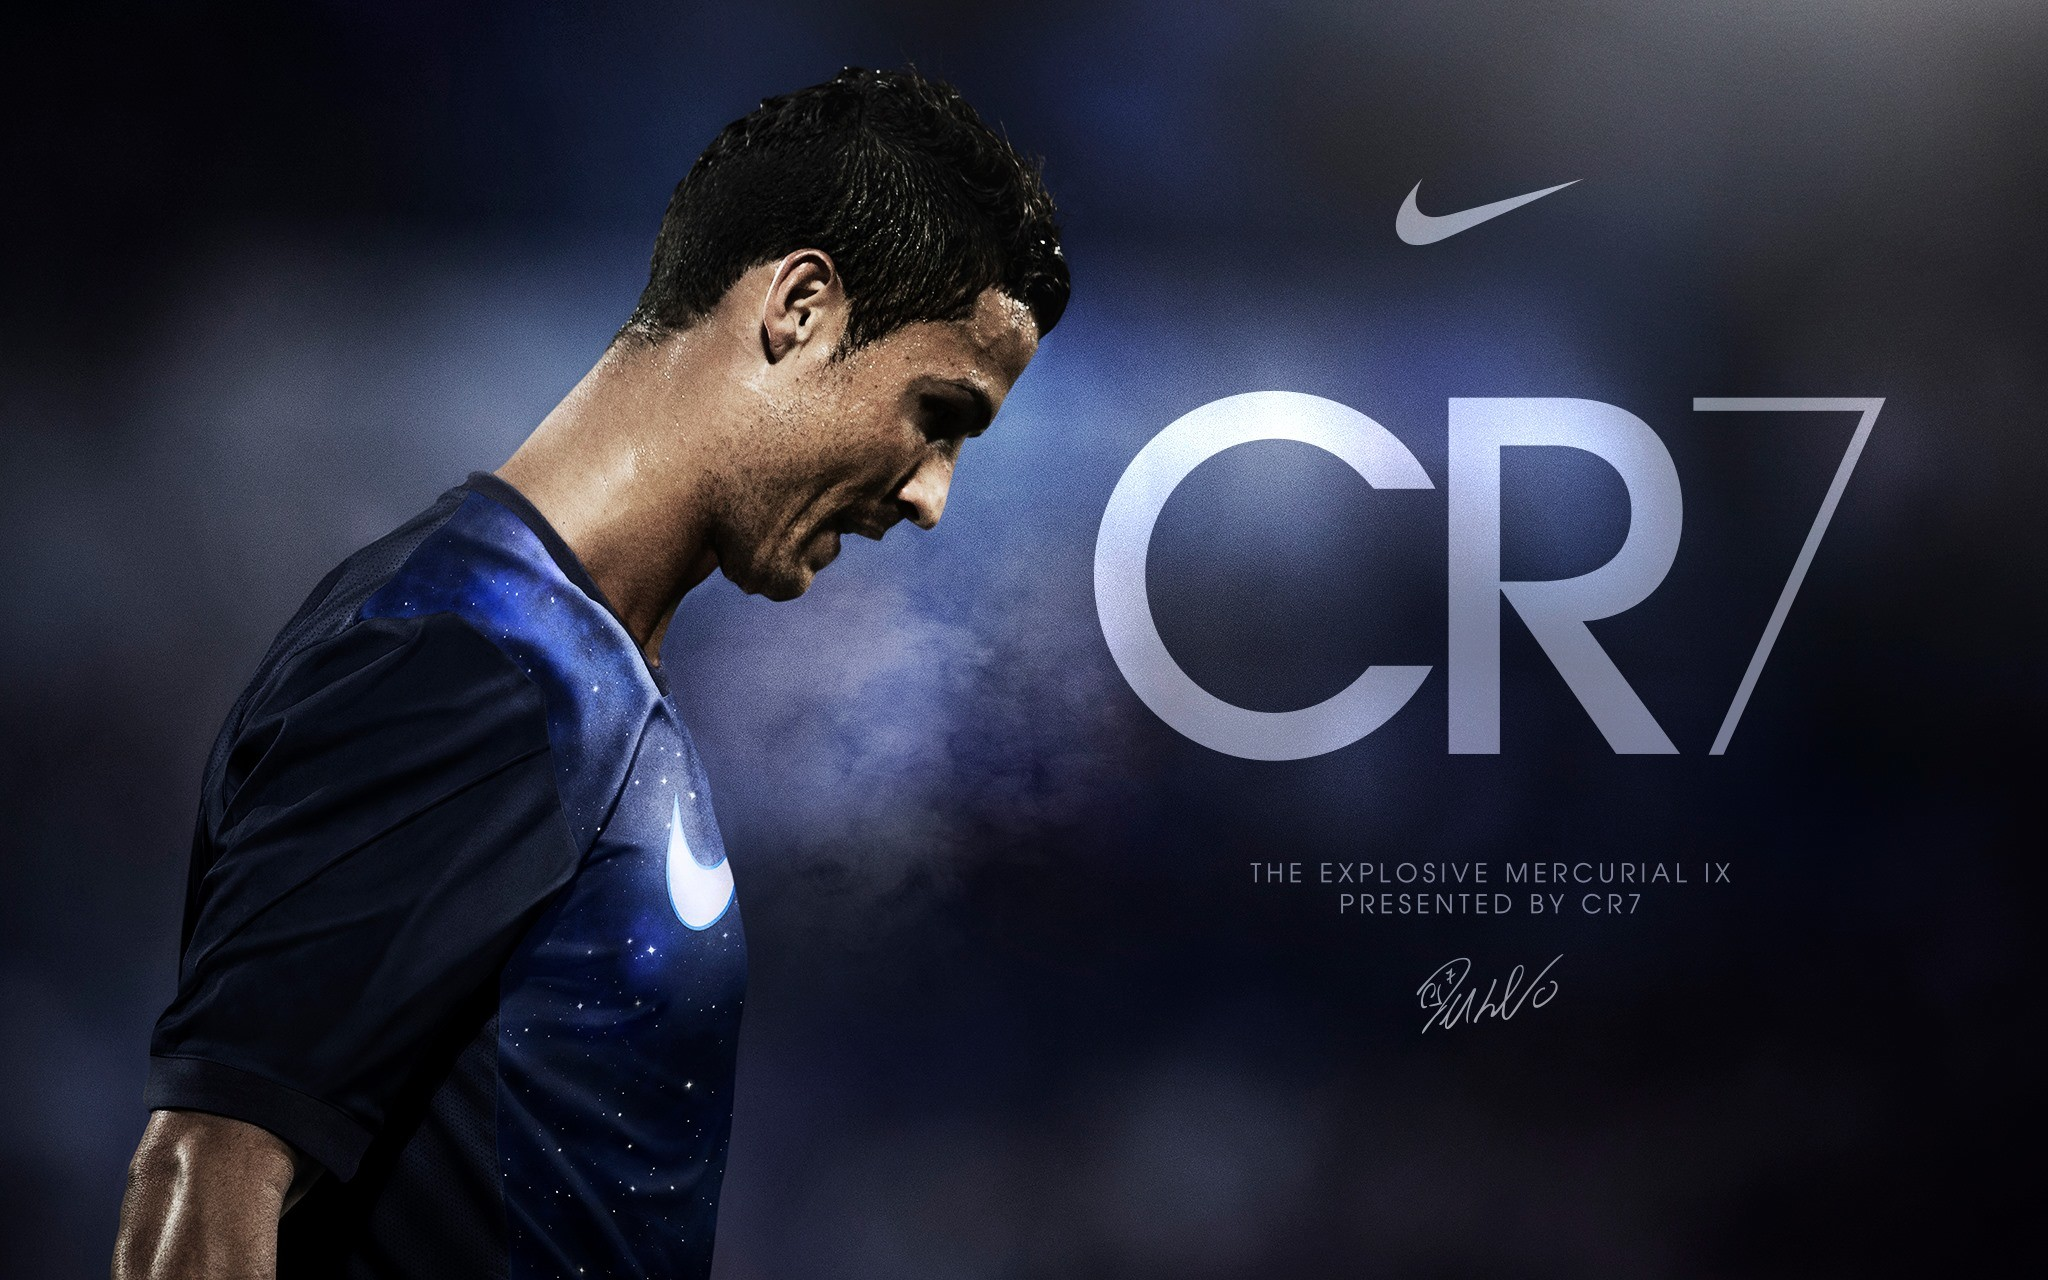 Nike Launches New Mercurial IX 'CR7 Galaxy' Boot and Collection (Oct 21,  2013)